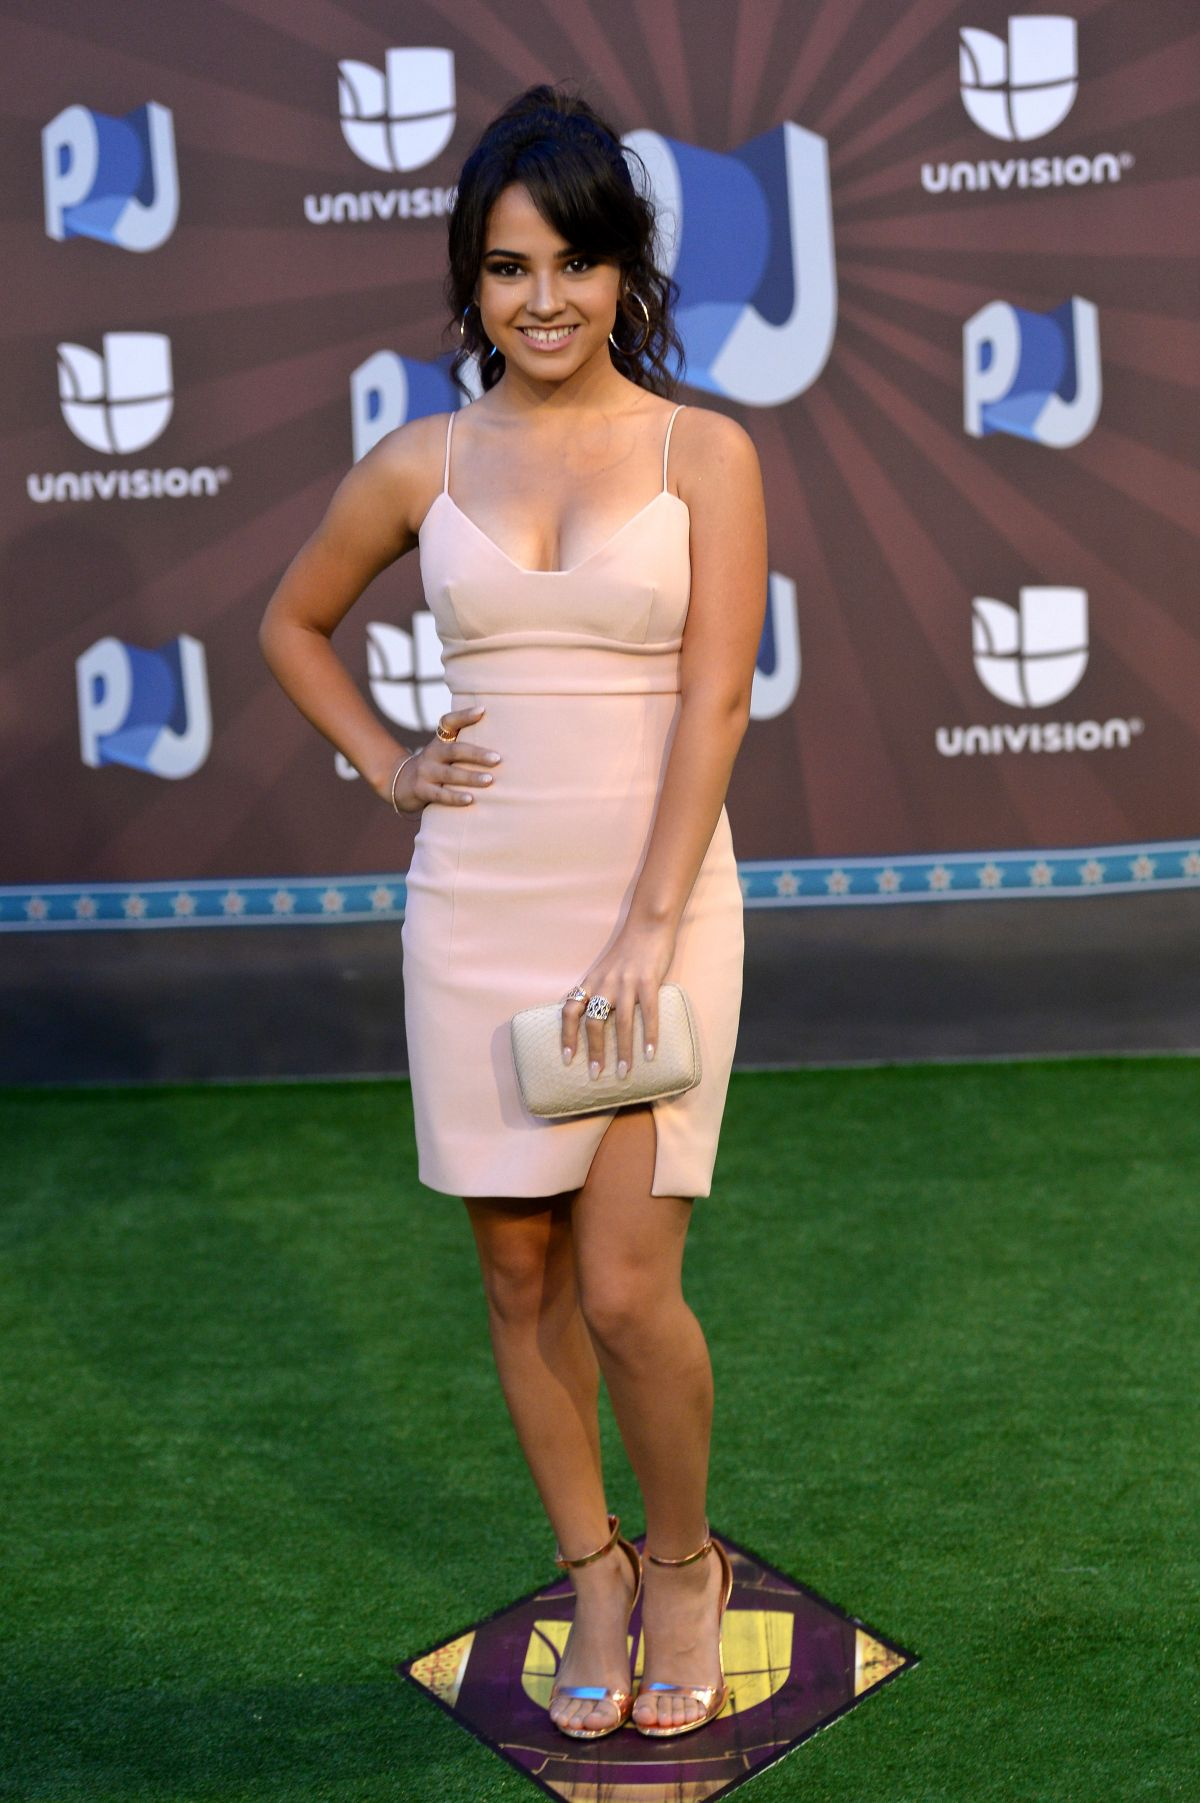 BECKY G at Premios Juventud 2014 in Coral Gables